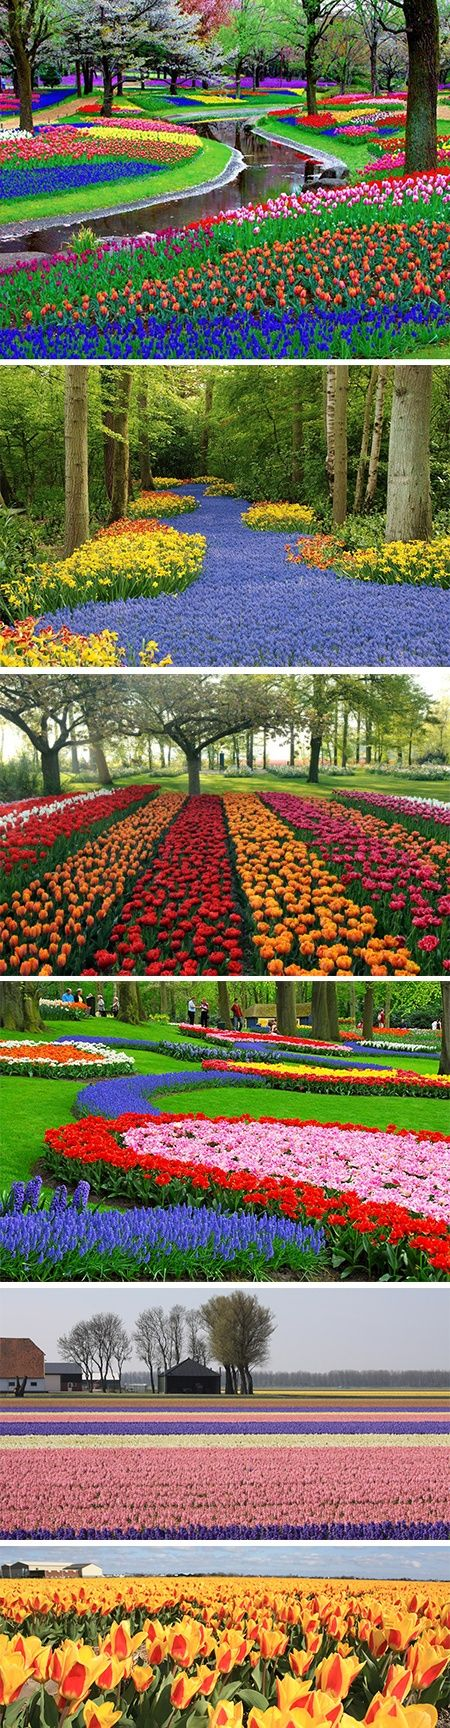 "Keukenhof Garden, near Amsterdam in The Netherlands - ""The Largest Flower Garden in the World"" - and this pin has better pictures than I took in 2012 as we visited too early in the season."